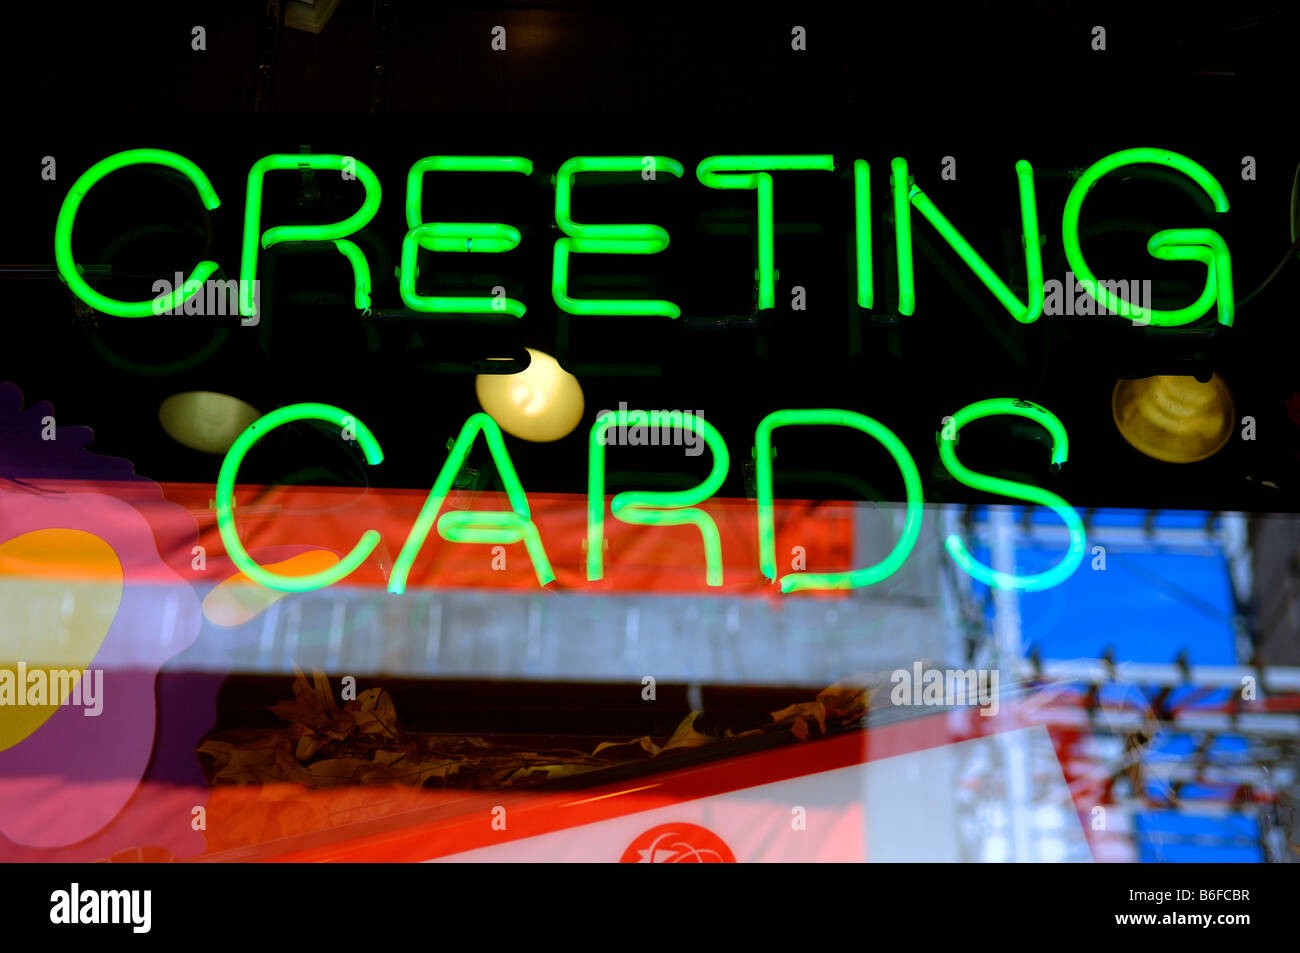 Display Greeting Cards Stock Photos Display Greeting Cards Stock